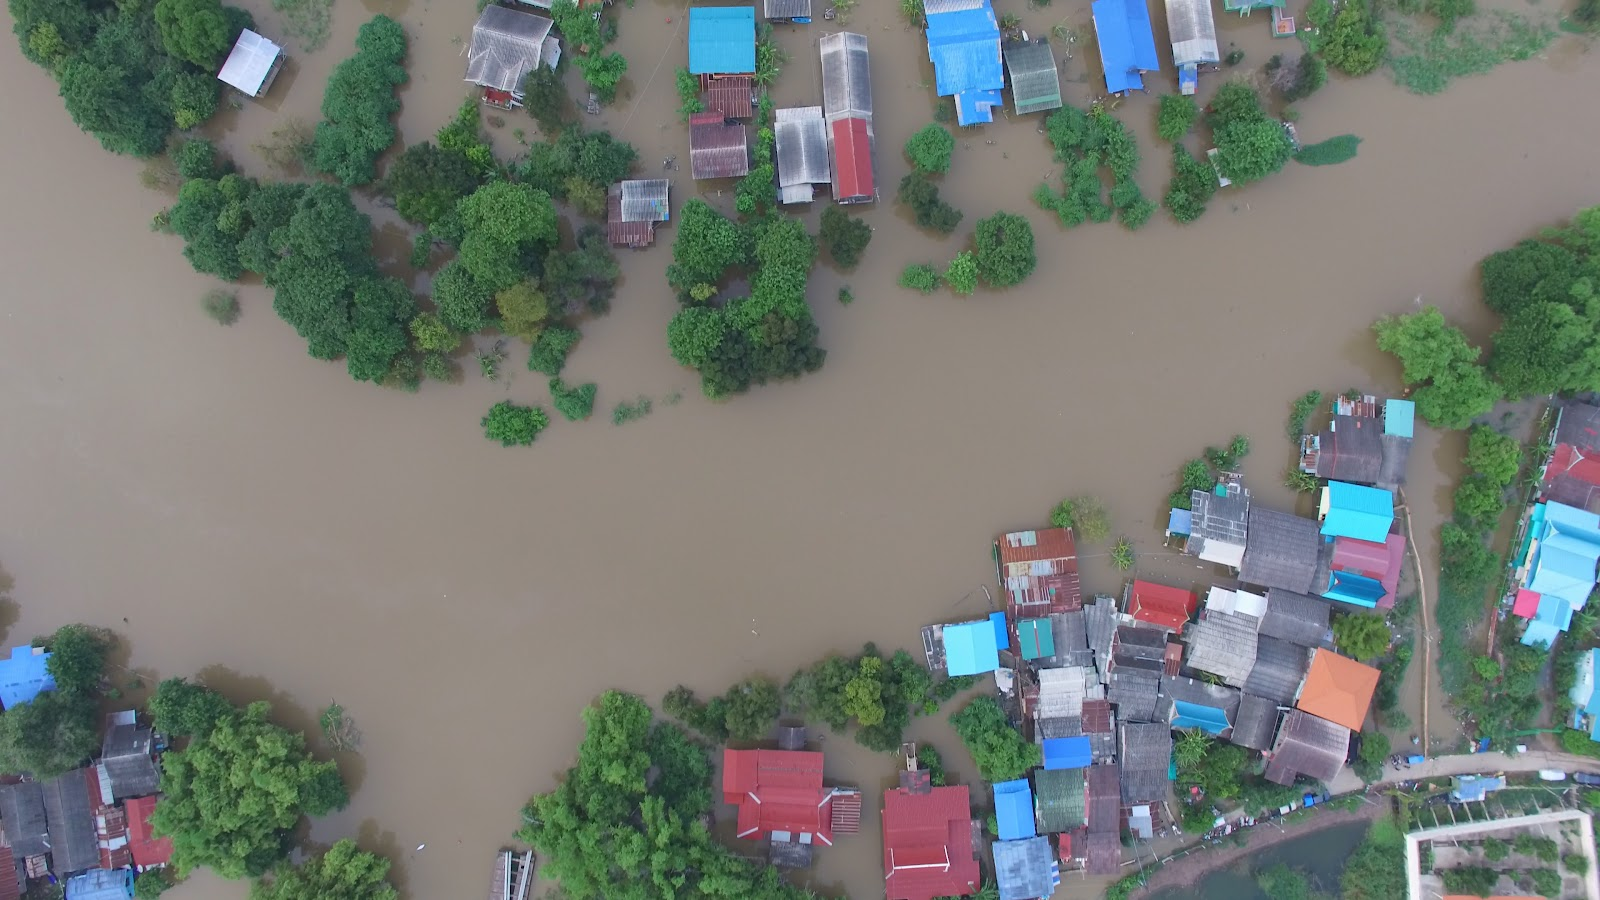 Bird's eye view of flooded homes, natural disaster, ruin